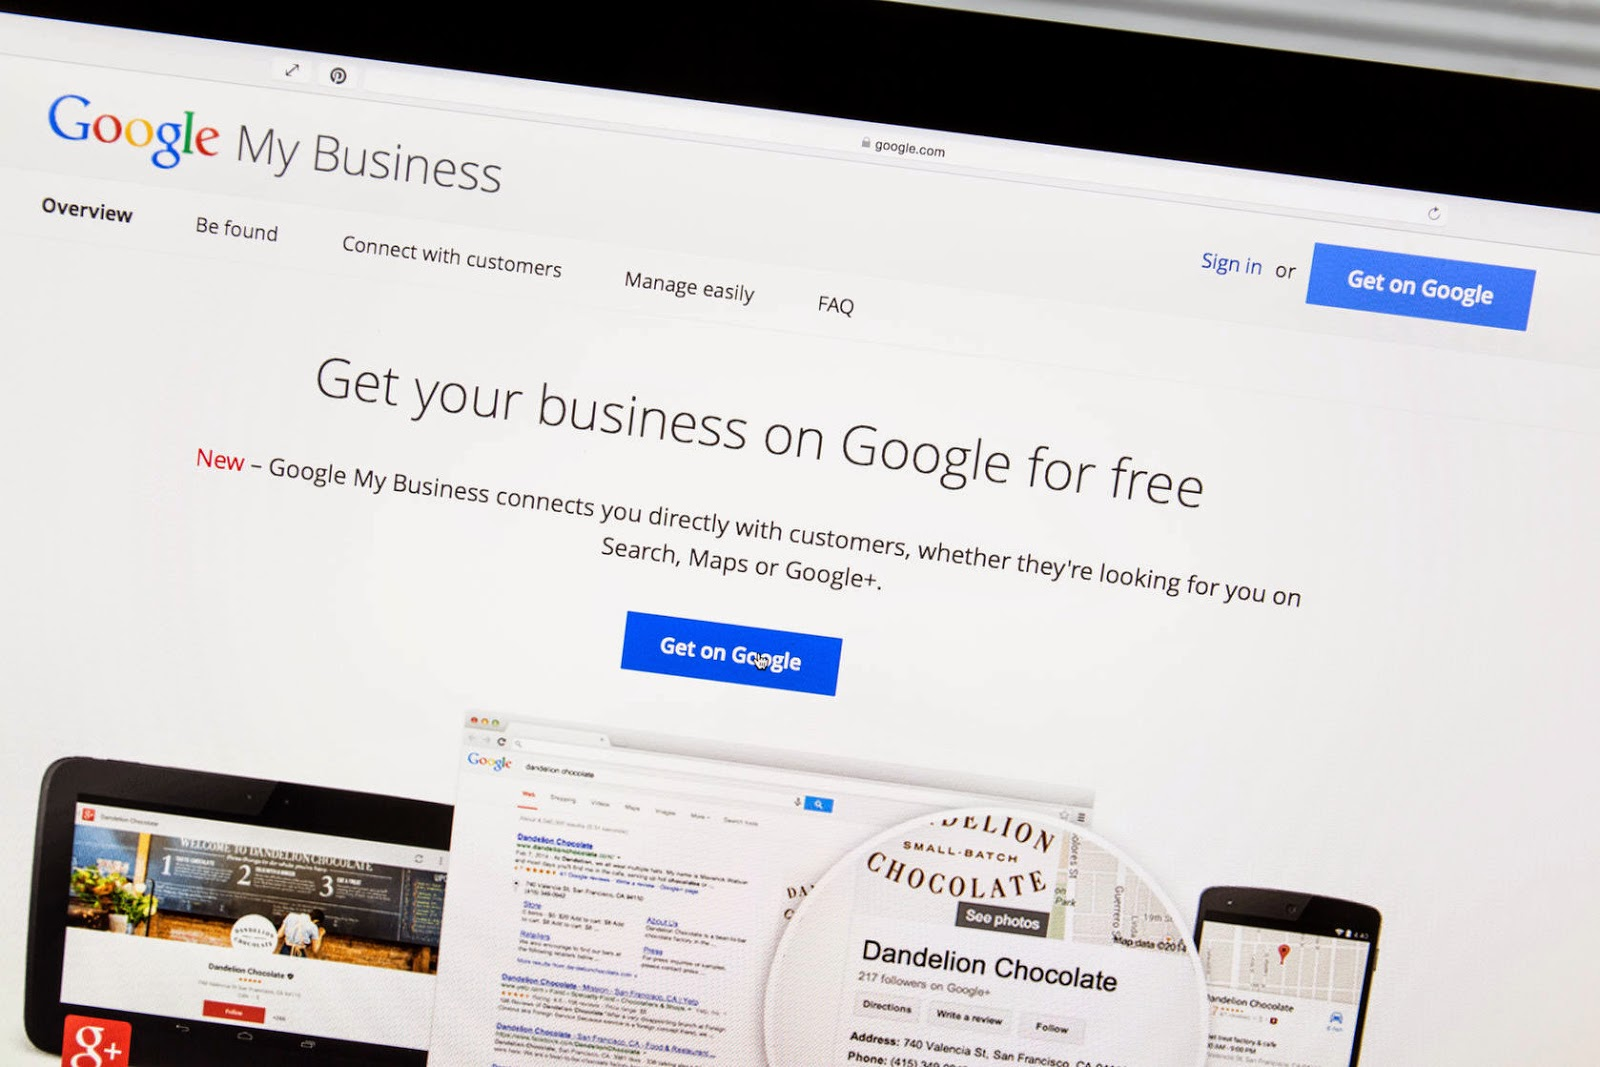 A photo of a laptop screen showing the Google My Business home website